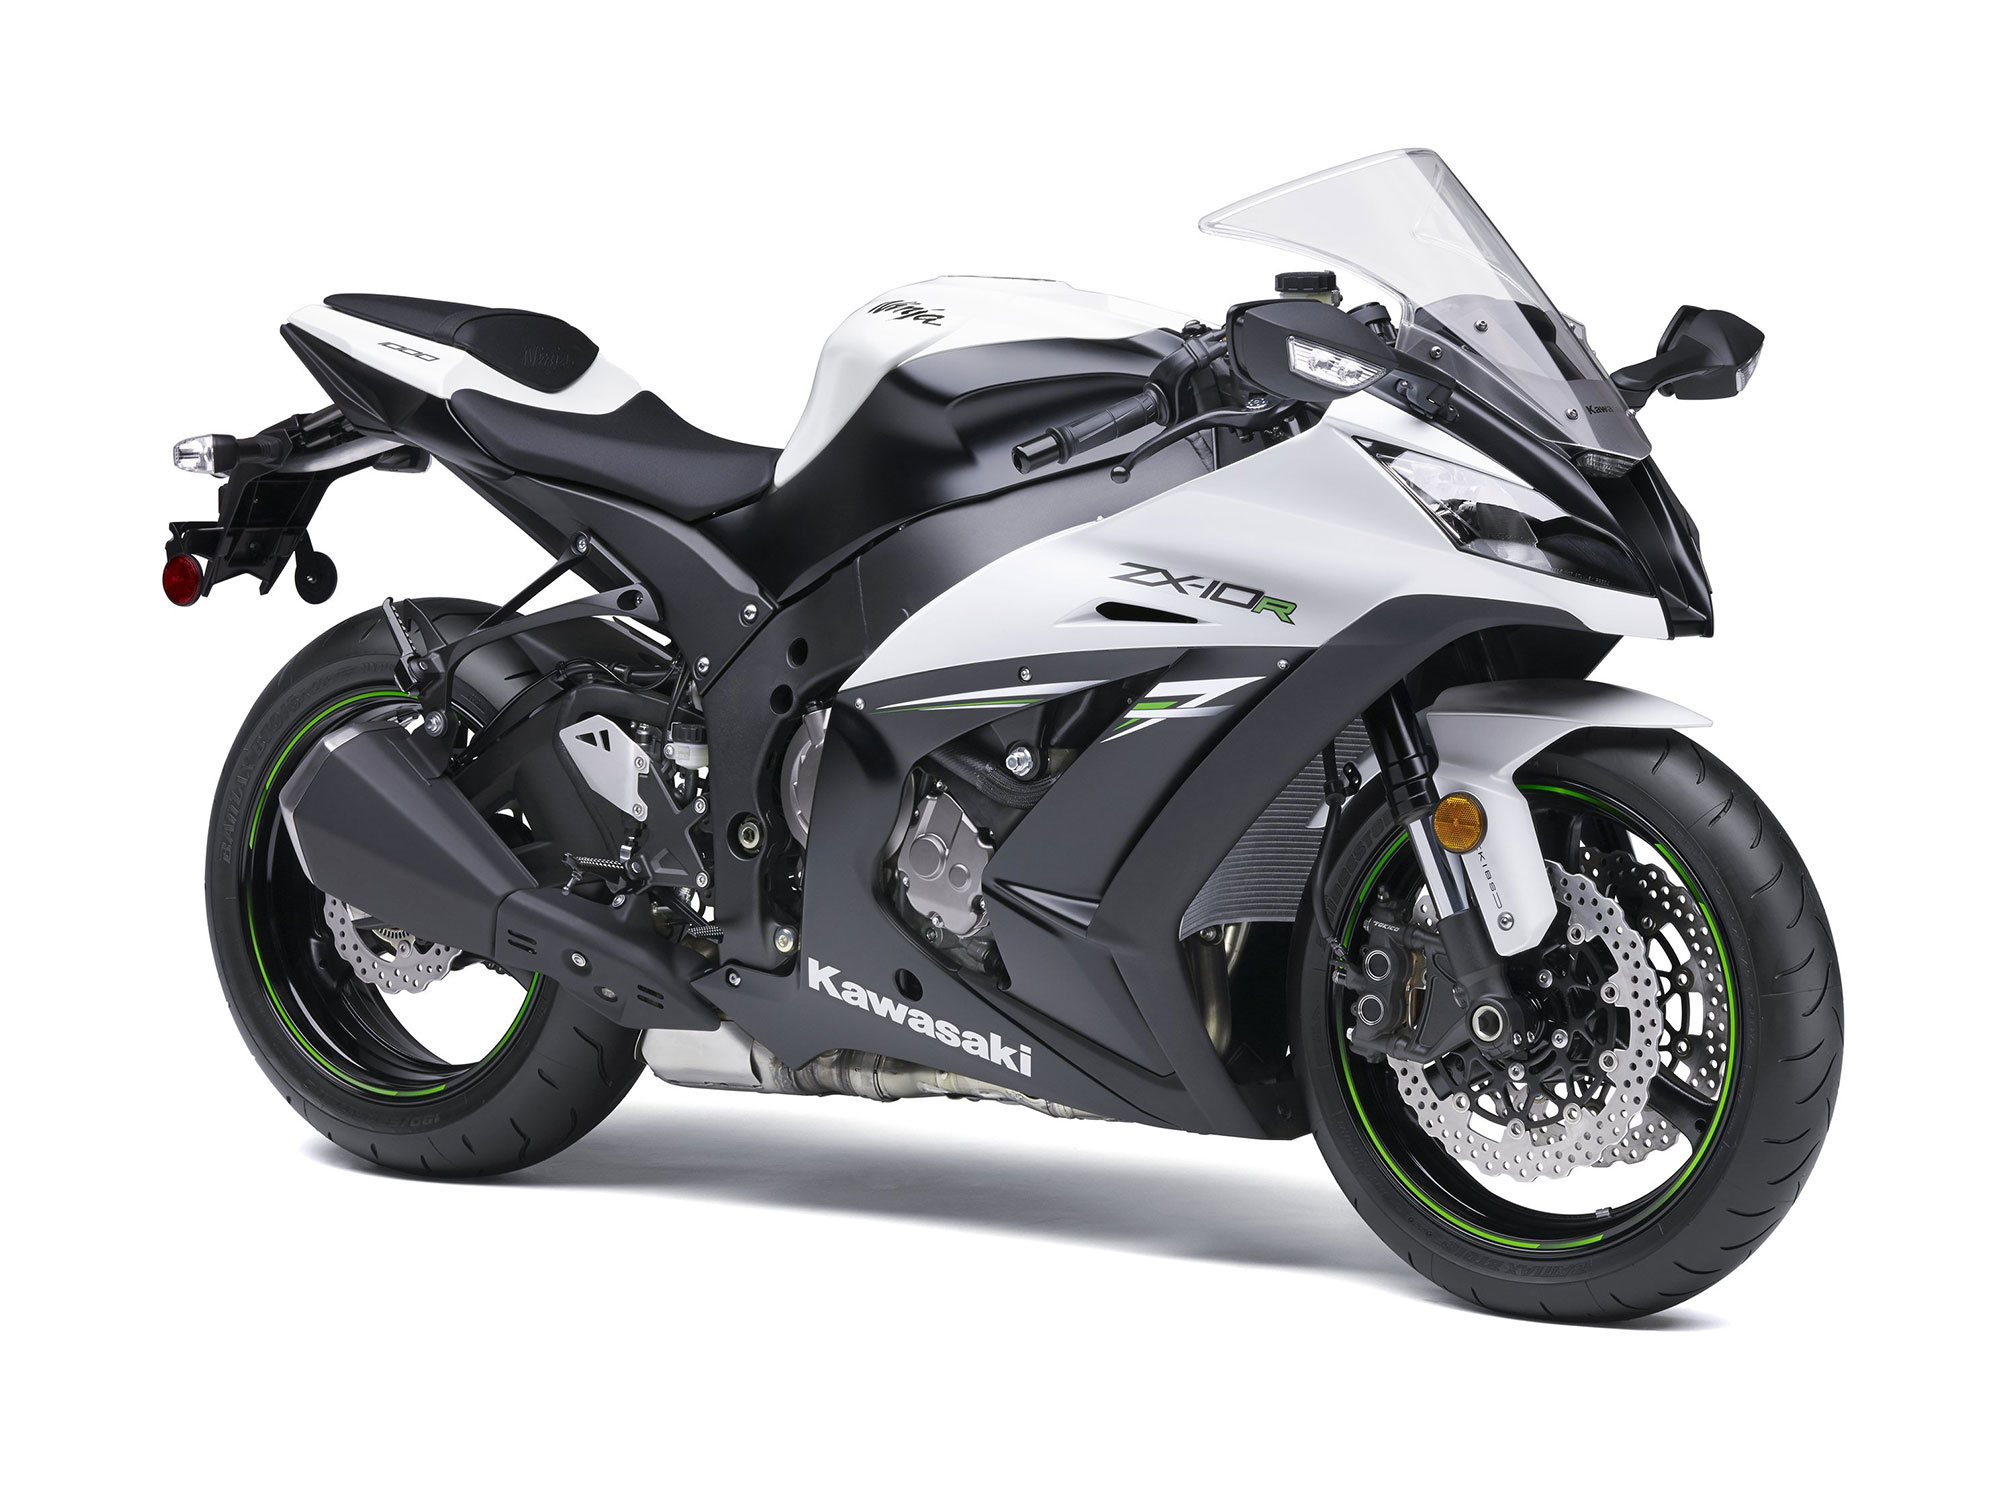 kawasaki kawasaki ninja zx 10r specs 2013 2014 autoevolution. Black Bedroom Furniture Sets. Home Design Ideas